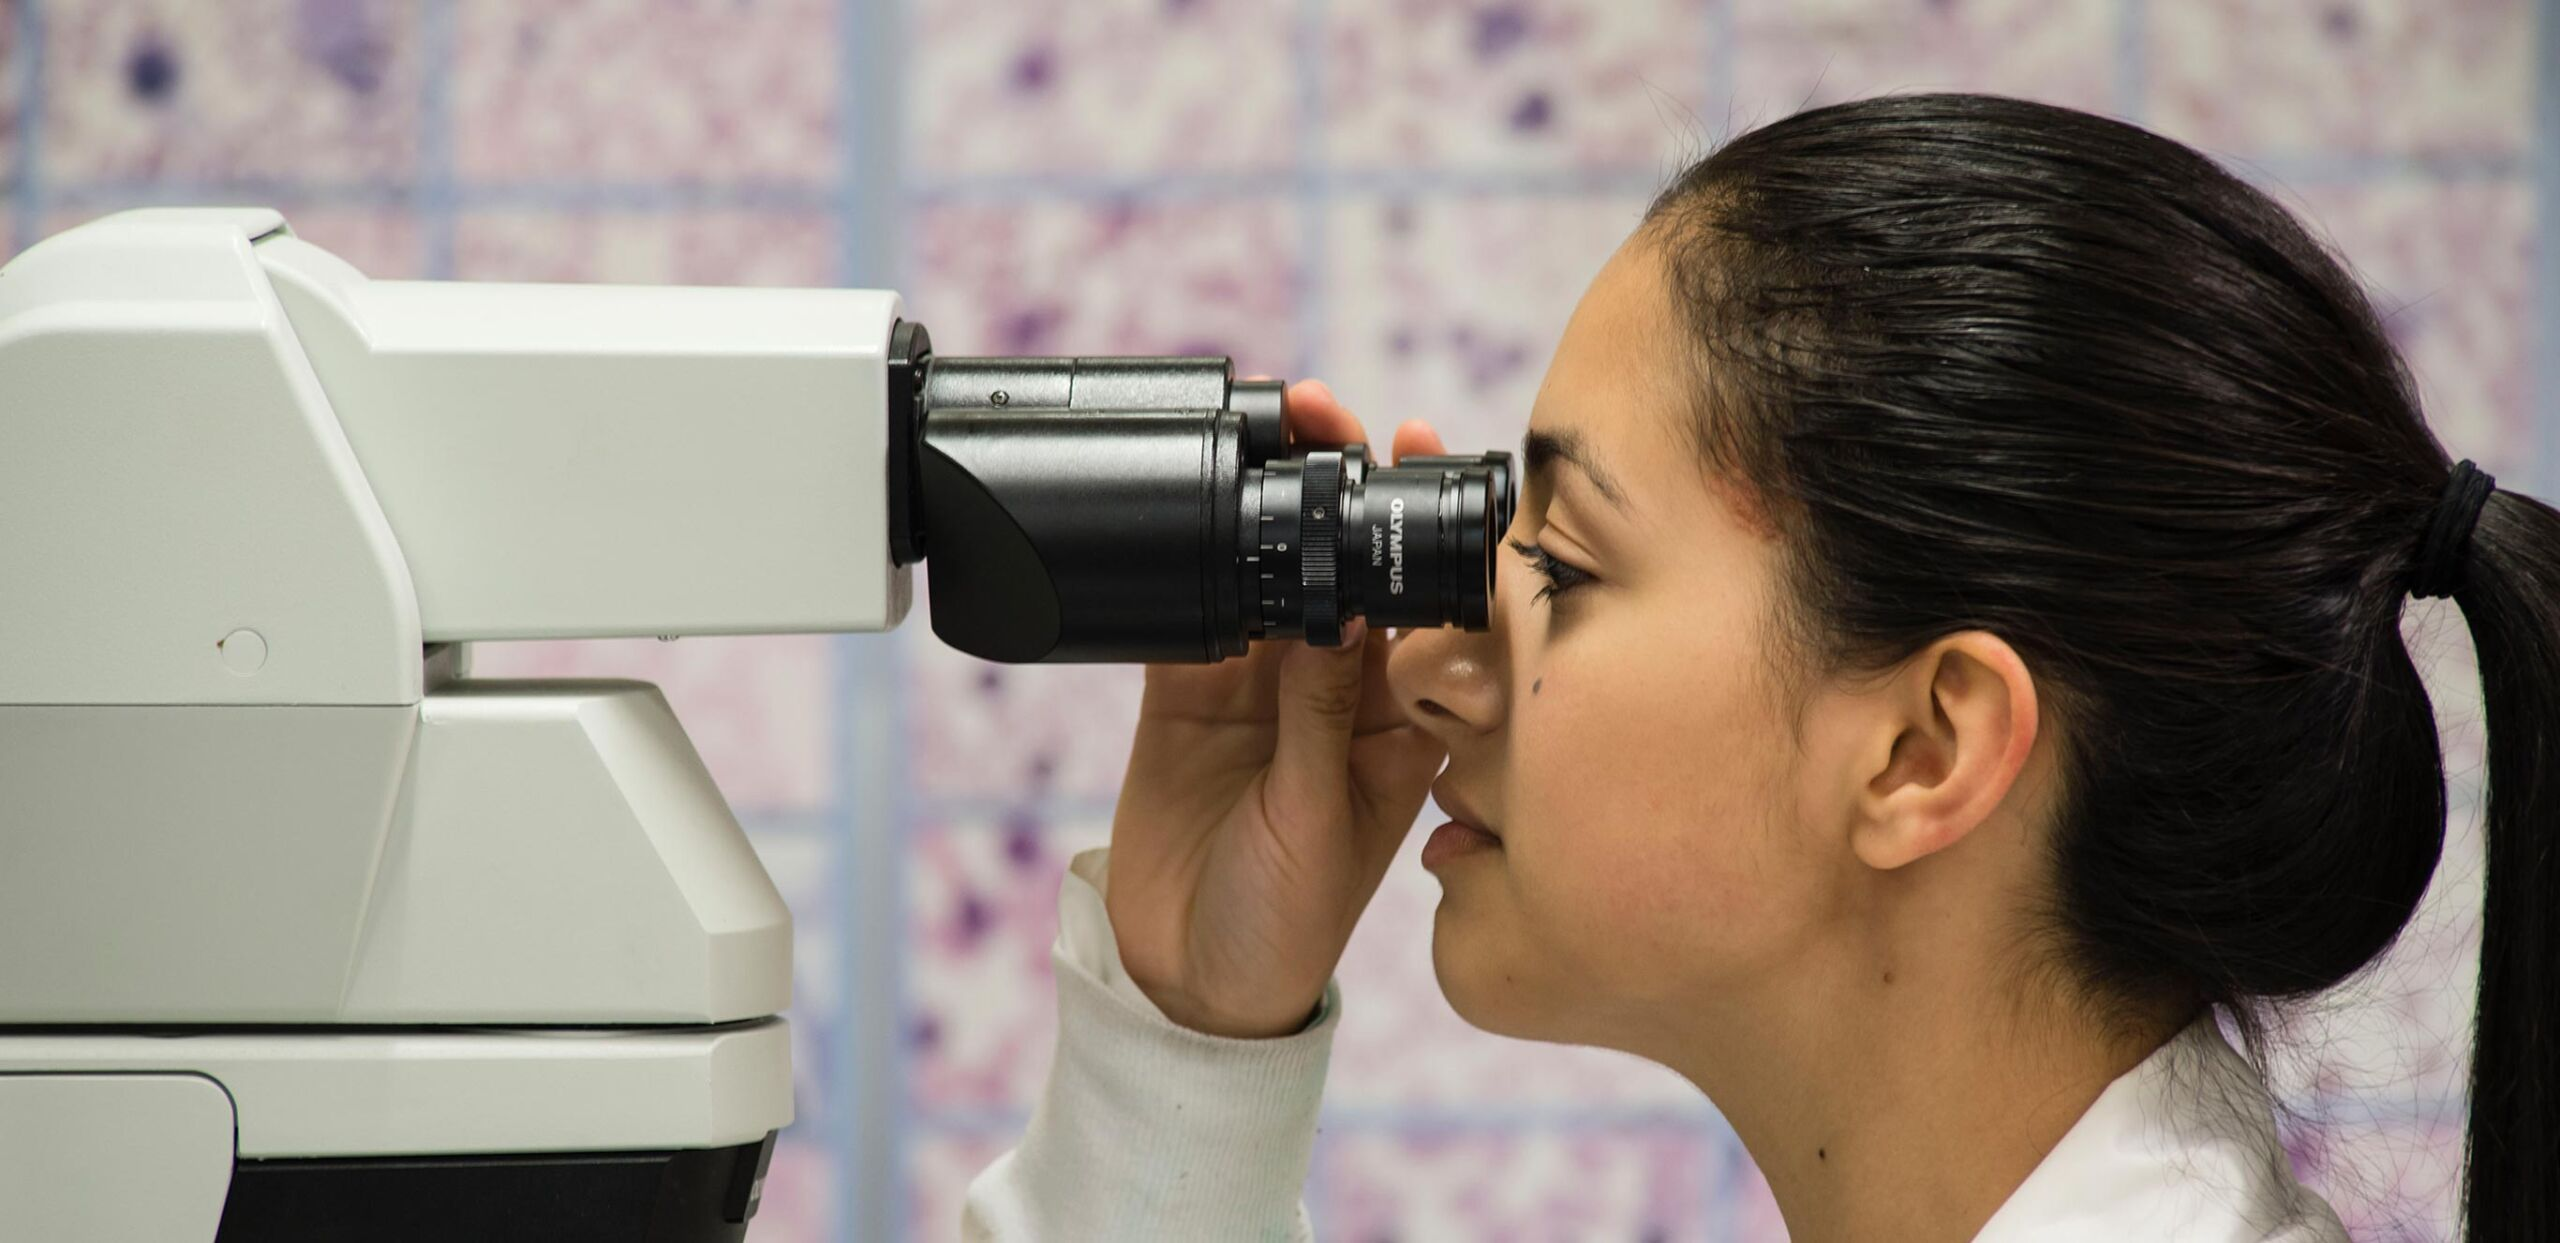 Young female scientist peers through stereo microscope, Cooley Dickinson Health Care System, Northampton, MA 01060.